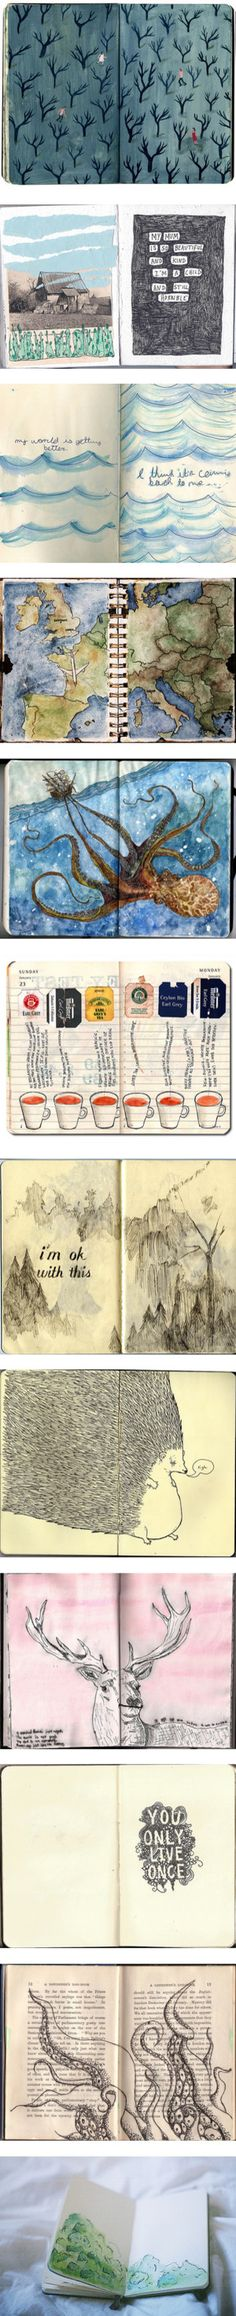 Journals and Colorful Drawings by camilla-adamowicz liked on Polyvore